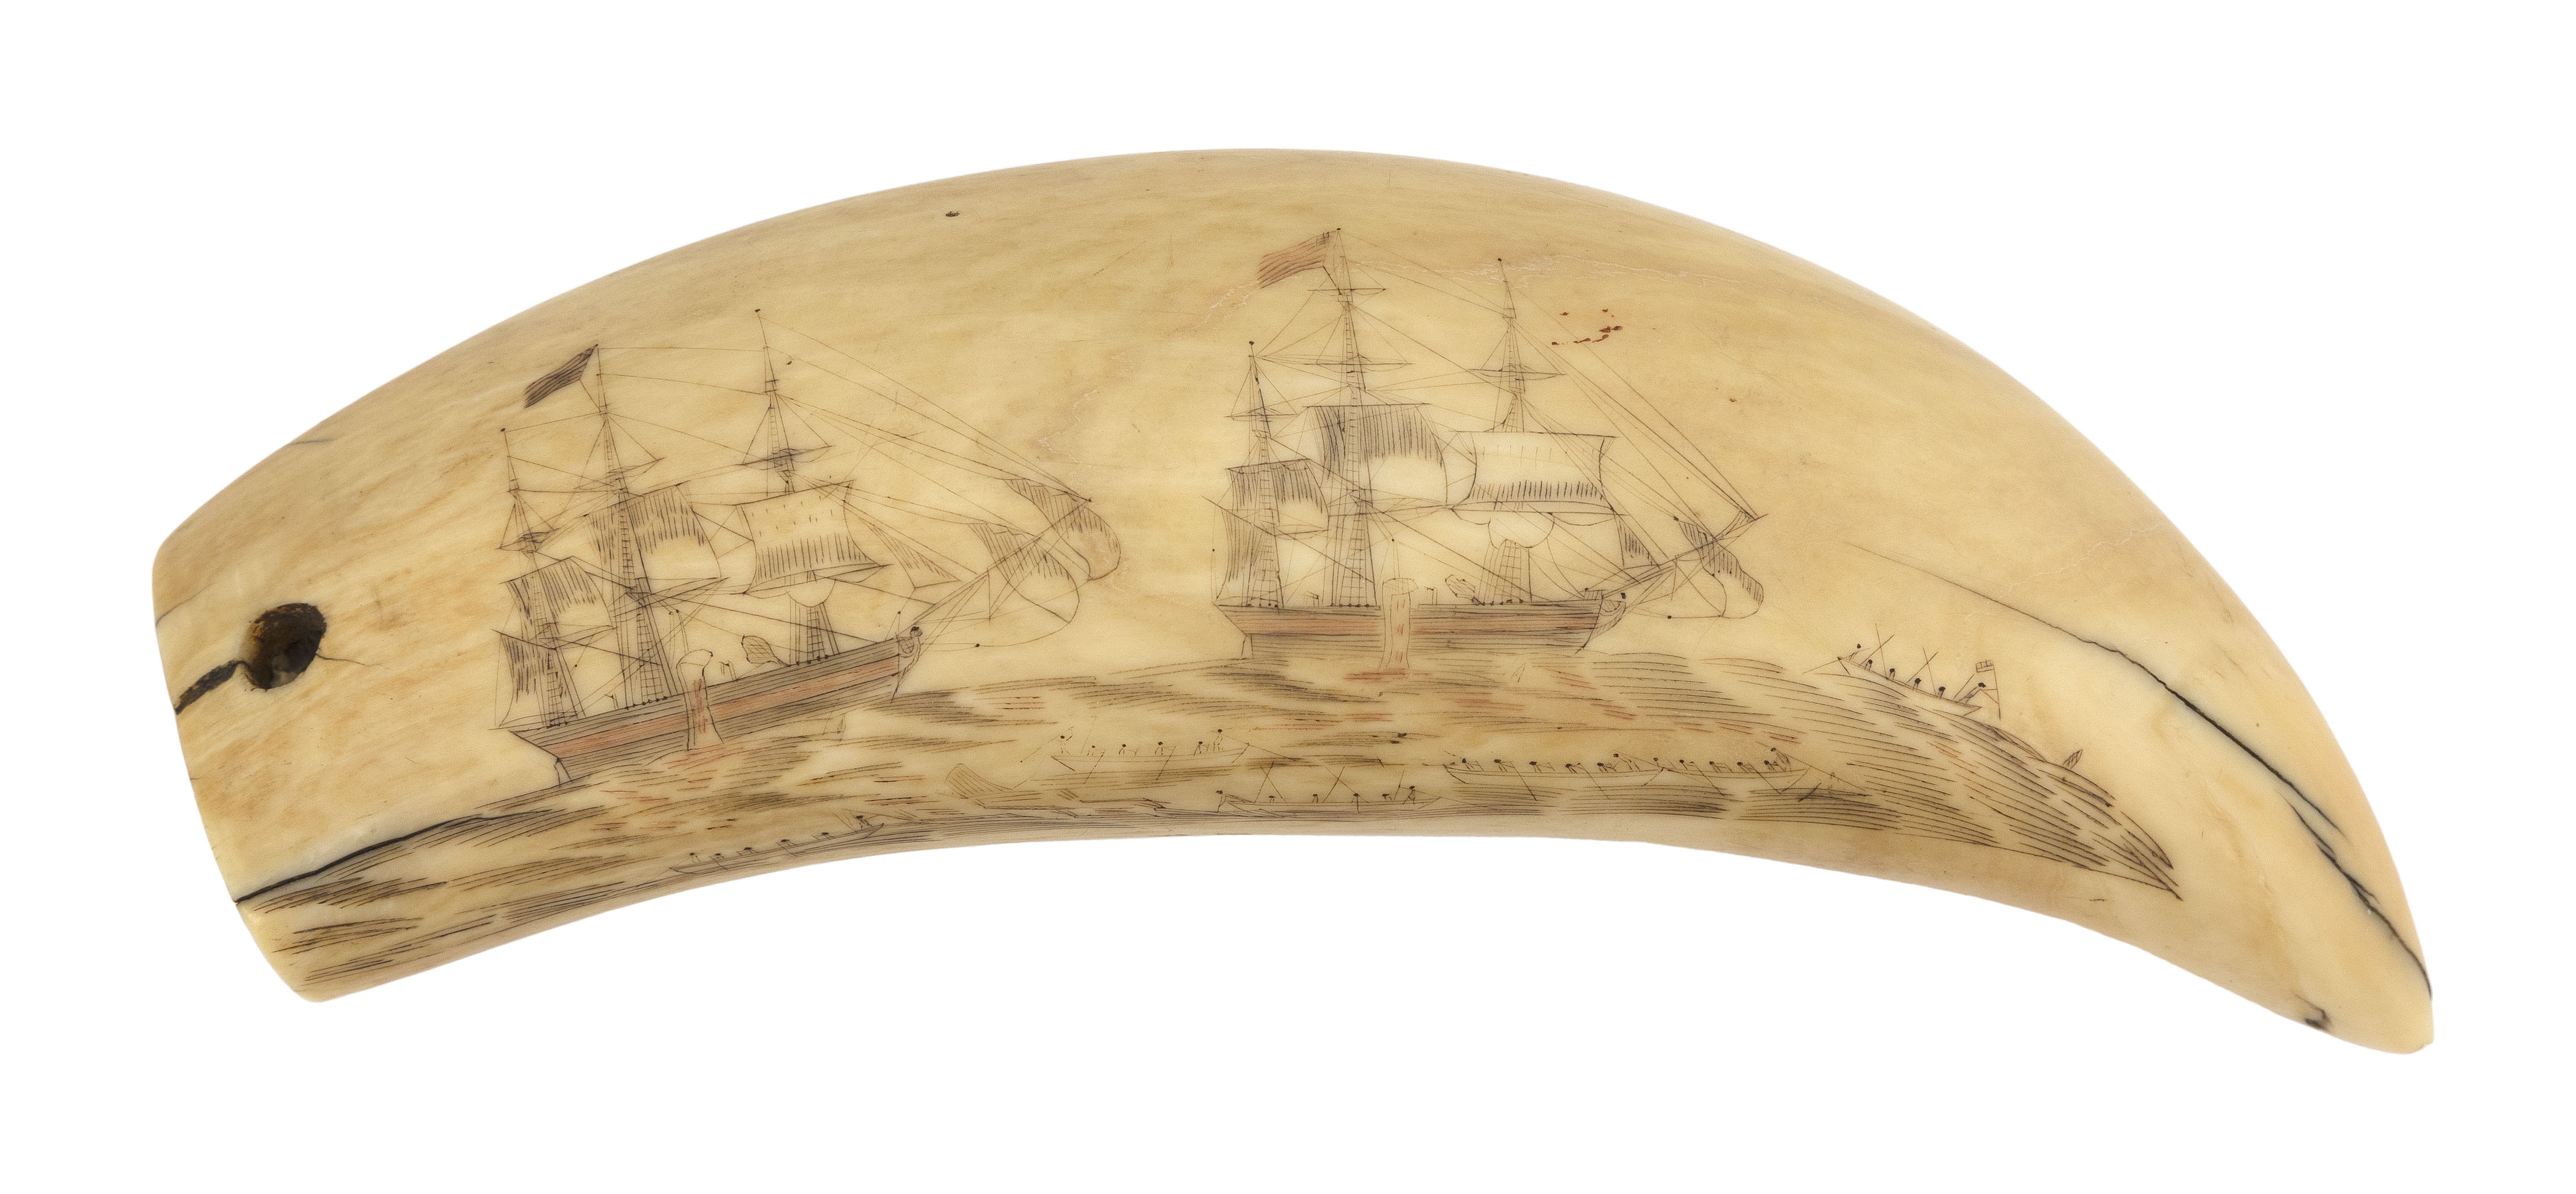 POLYCHROME SCRIMSHAW WHALE'S TOOTH WITH WHALING SCENE Mid-19th Century Length 6